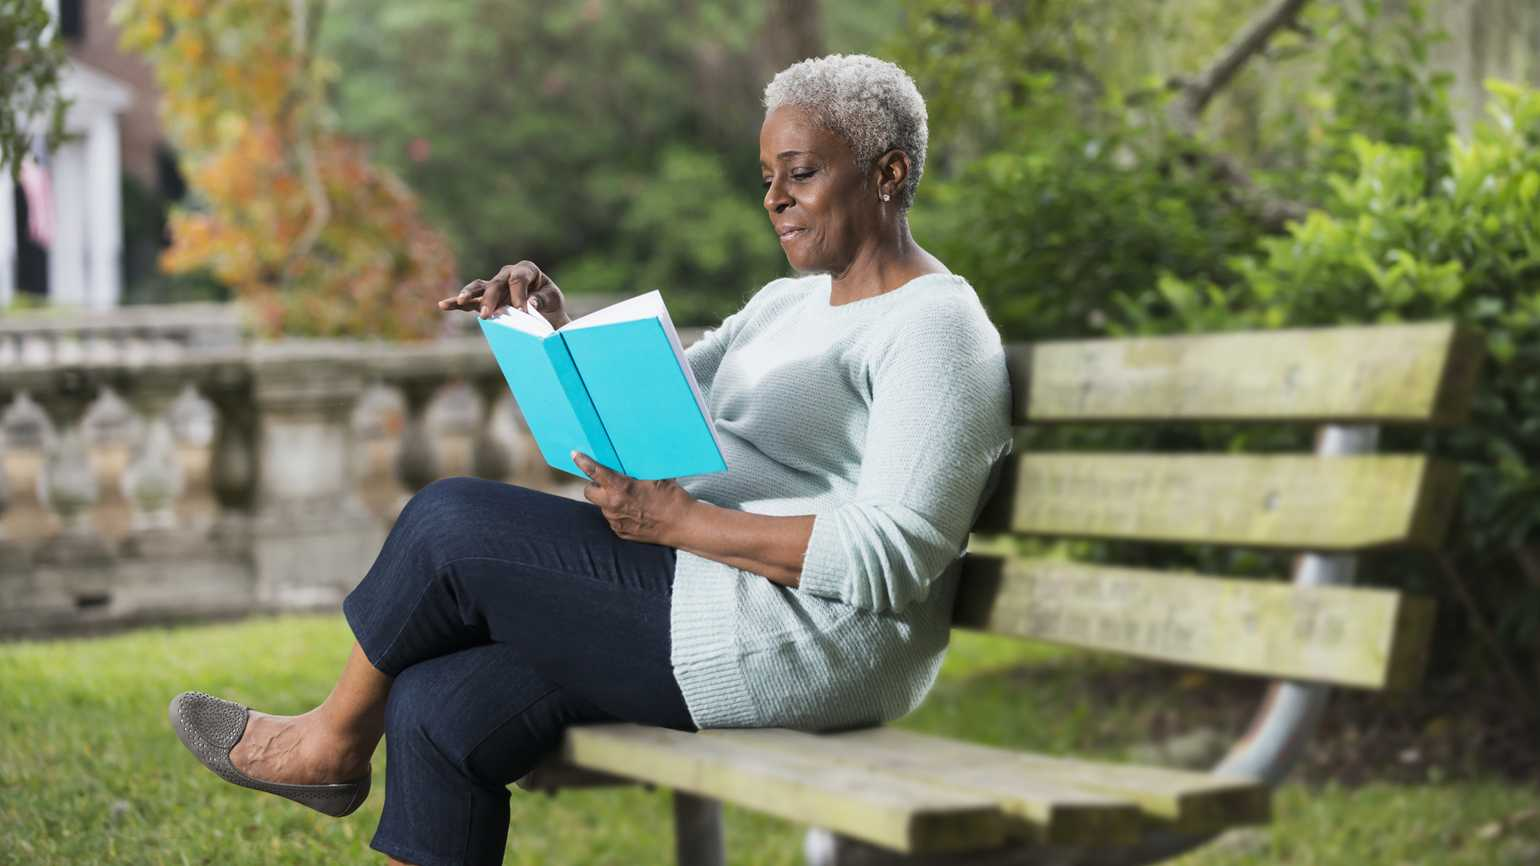 What You Can Do to Help Make Your Community More Age-Friendly